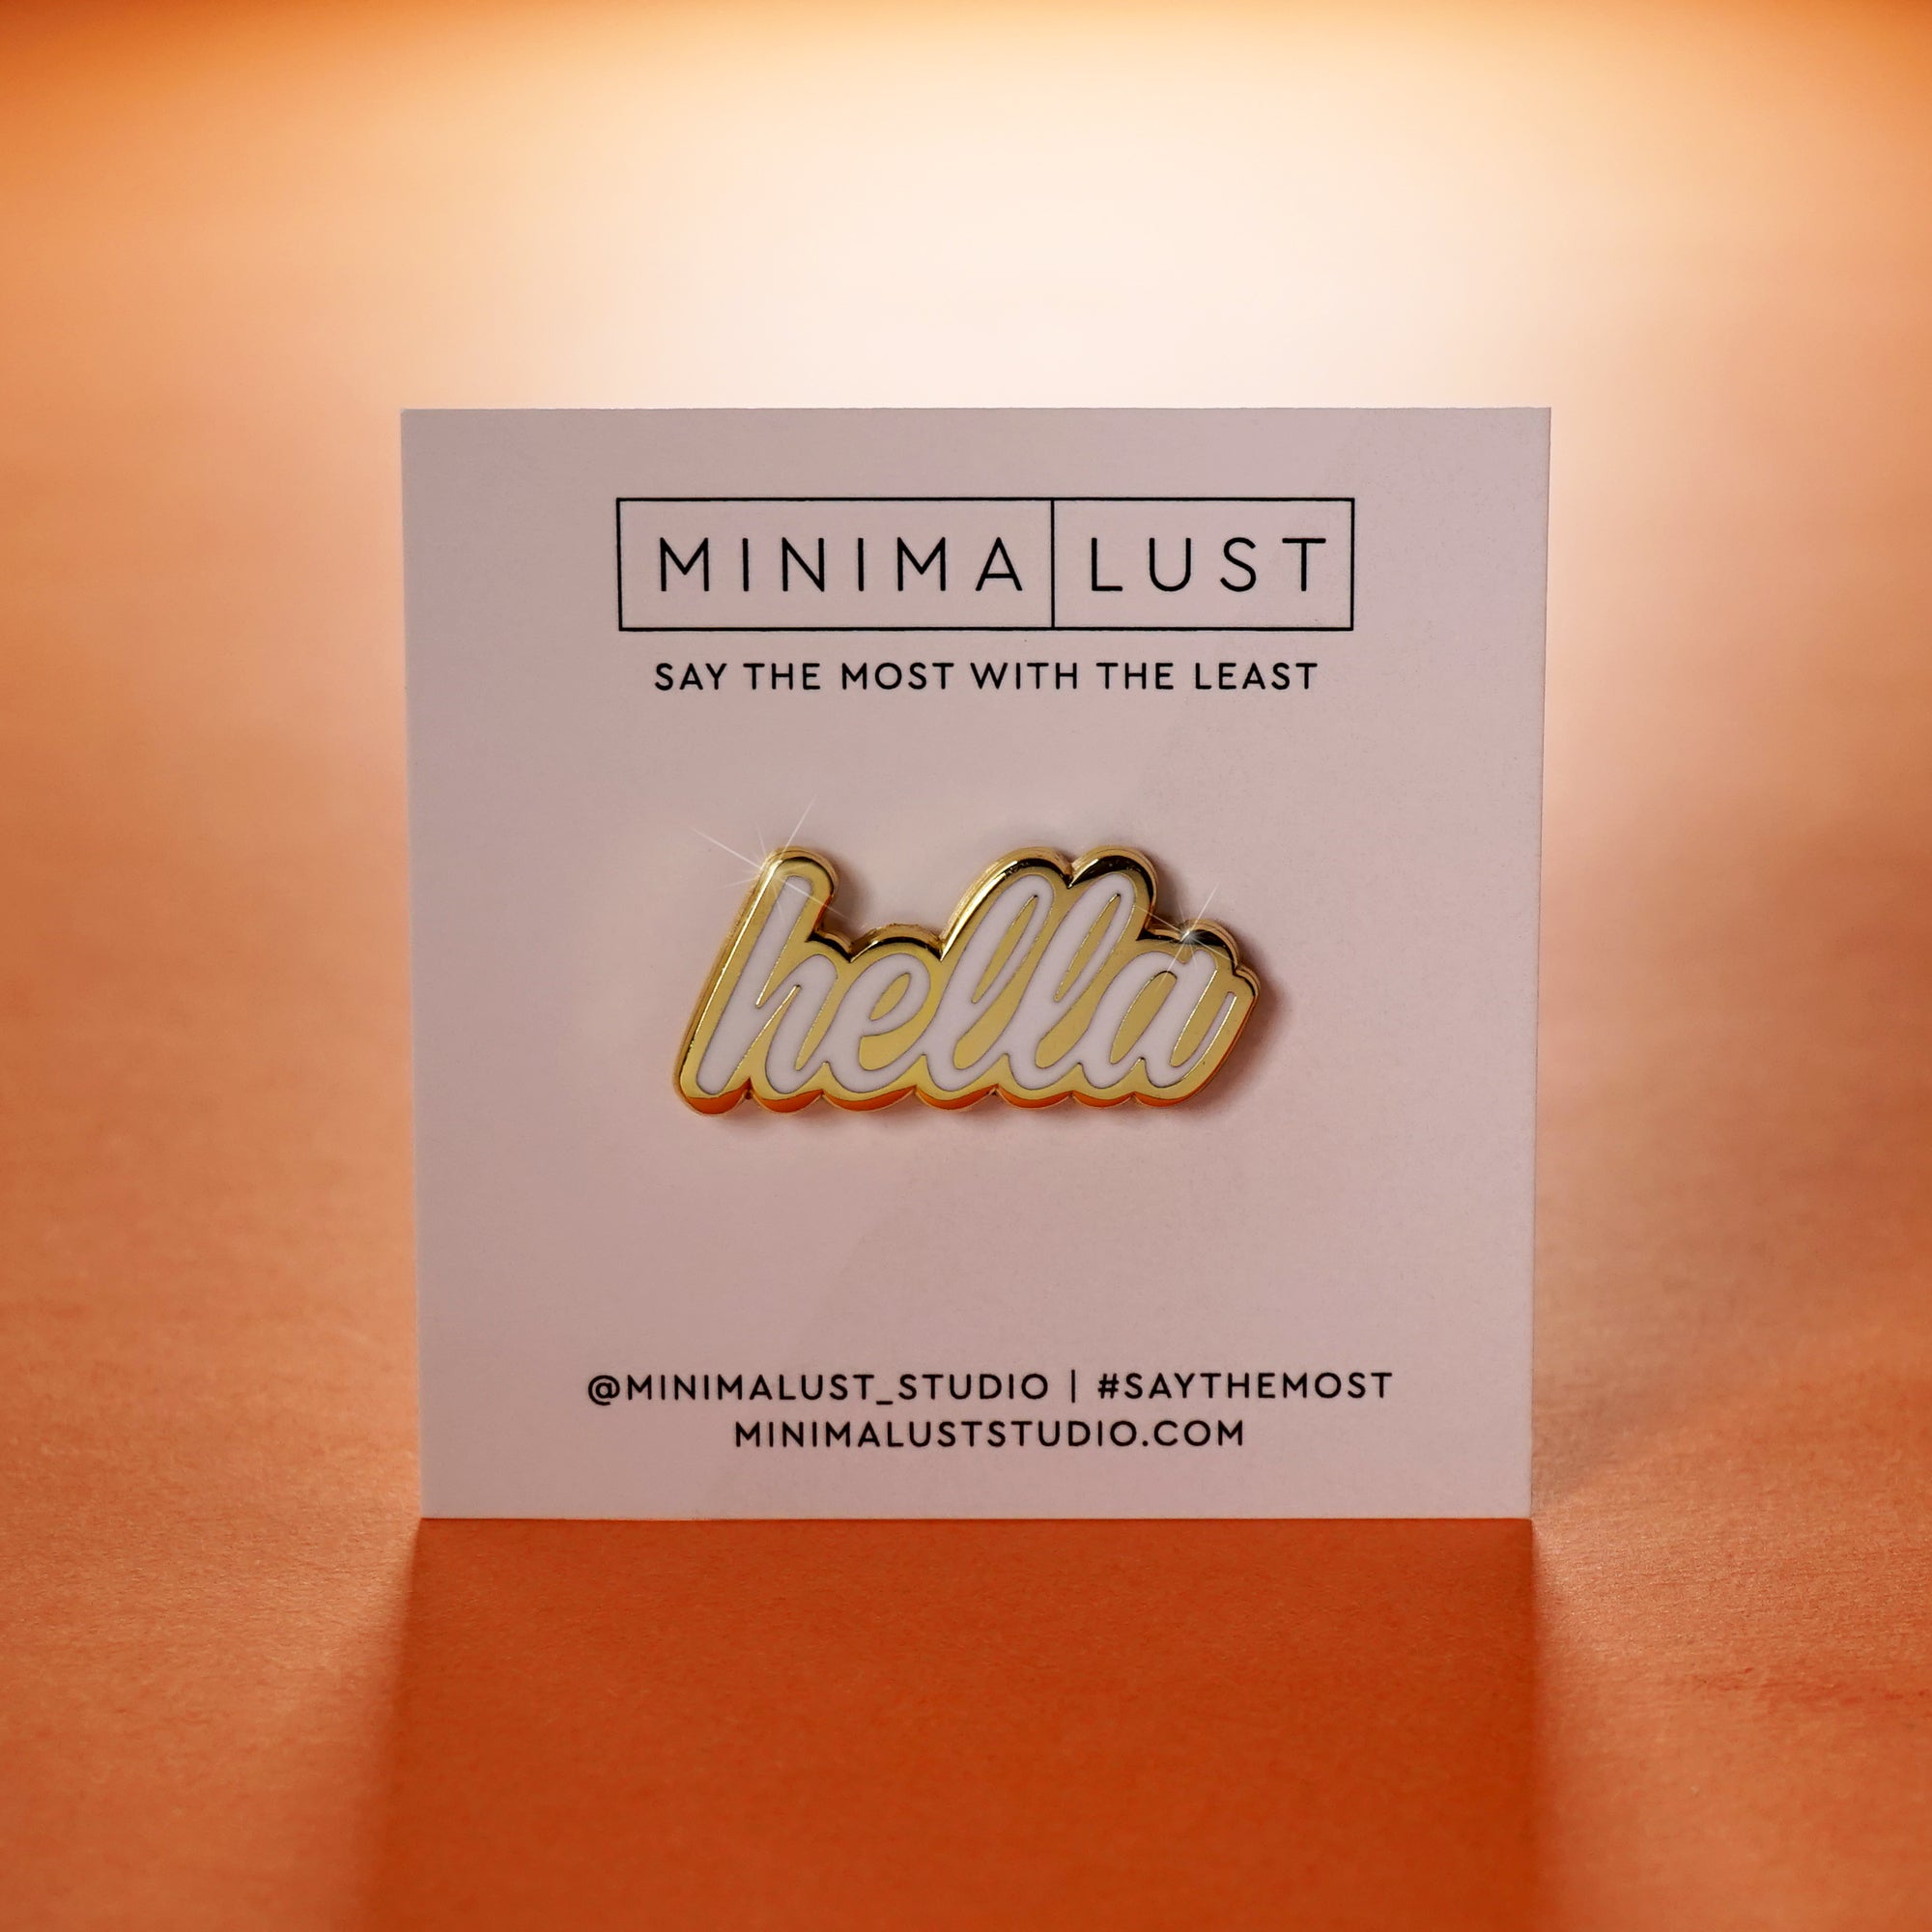 Hella White & Gold Enamel Pin